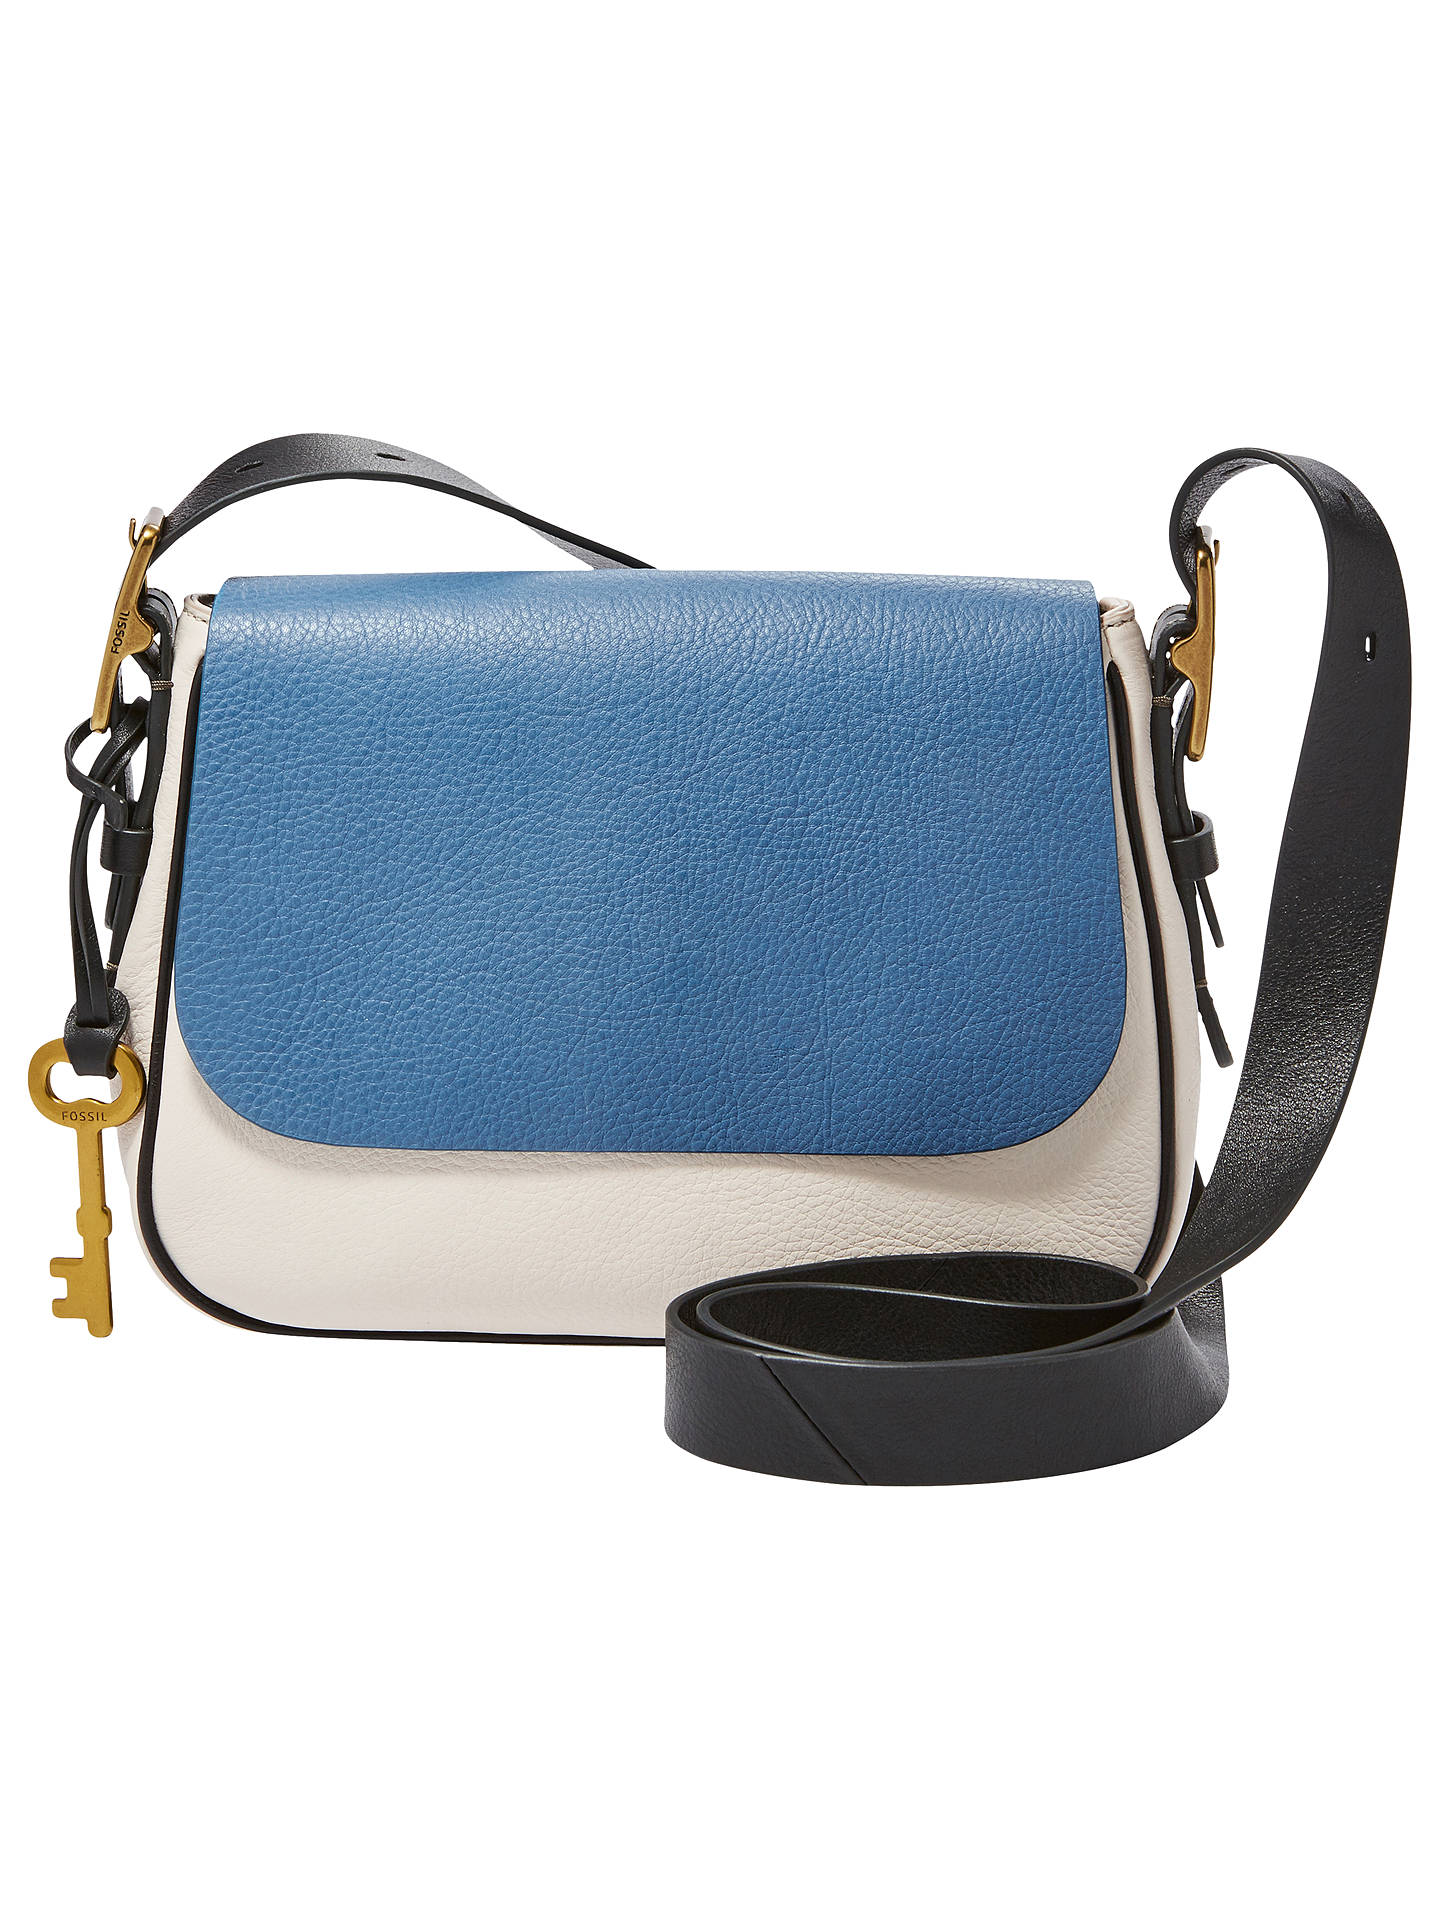 Fossil Harper Leather Small Cross Body Bag Cornflower Online At Johnlewis